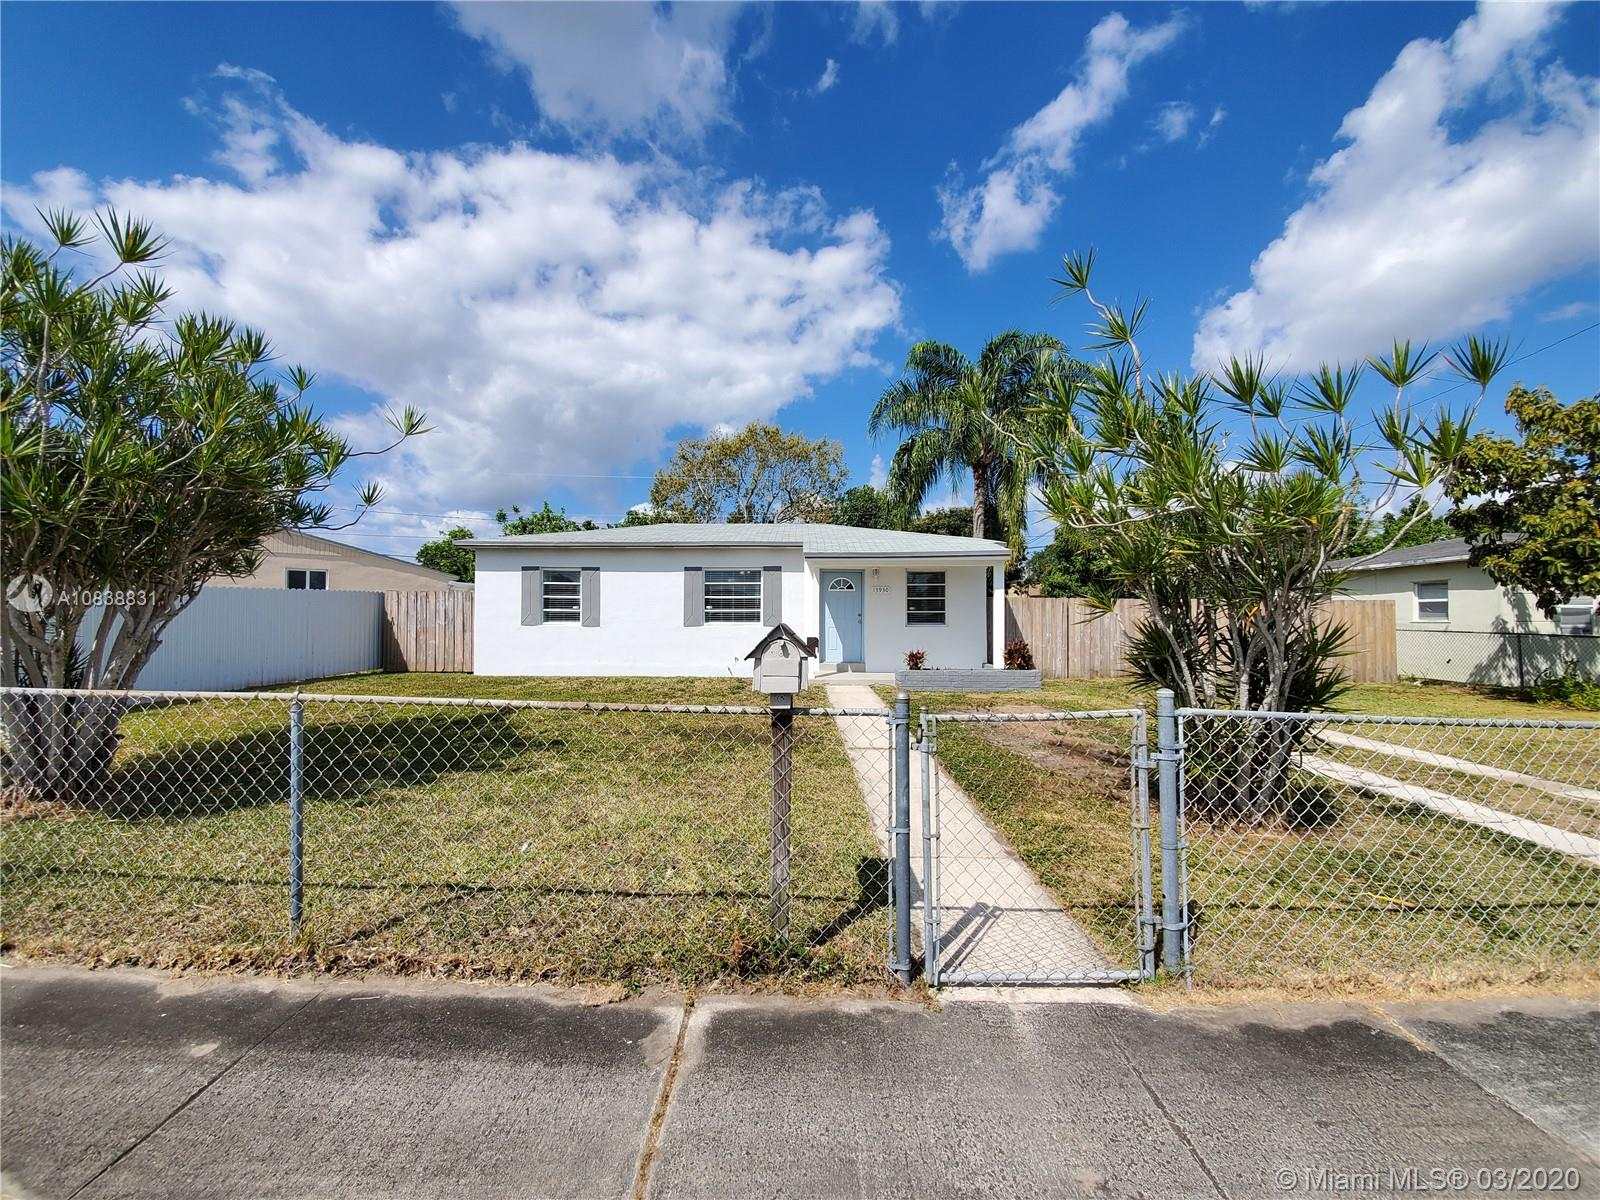 13930 Madison St, Miami, Florida 33176, 3 Bedrooms Bedrooms, ,1 BathroomBathrooms,Residential,For Sale,13930 Madison St,A10838831